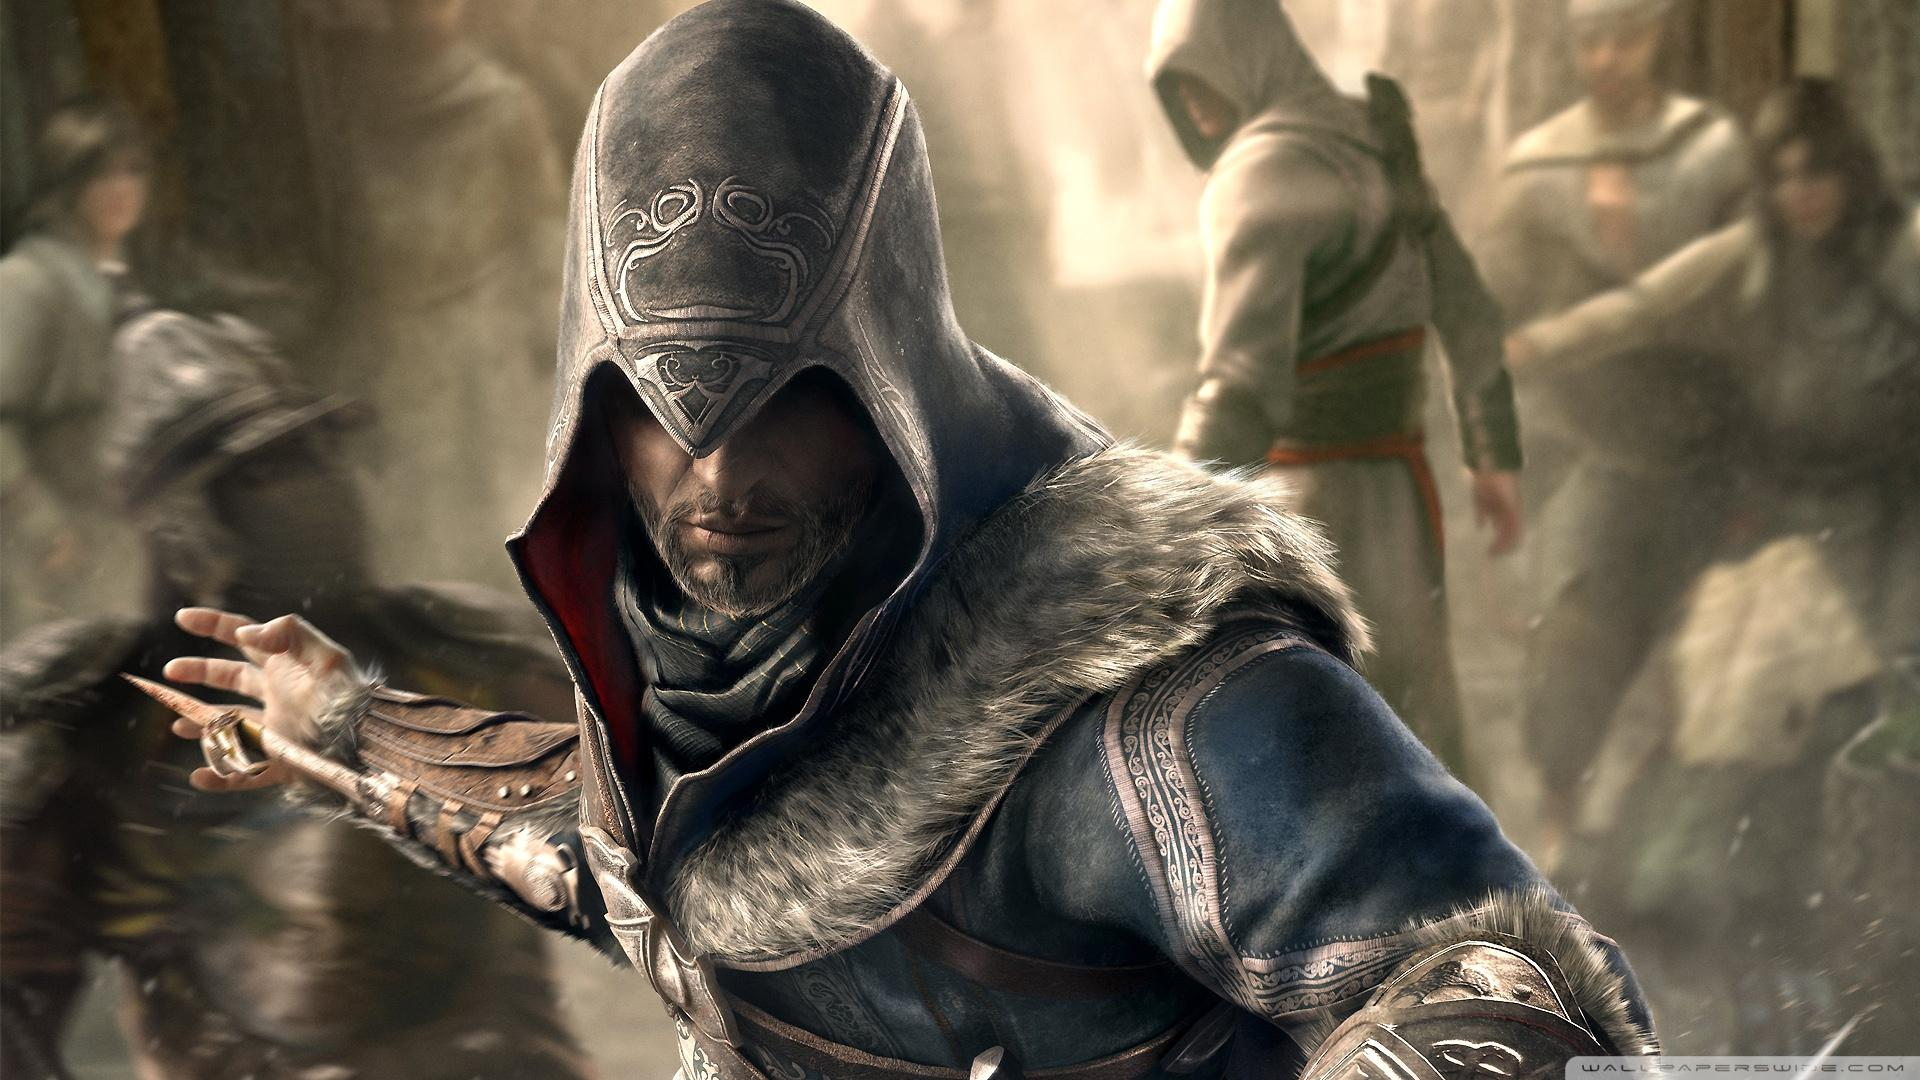 Revelation Wallpaper Ezio Auditore Assassins Creed